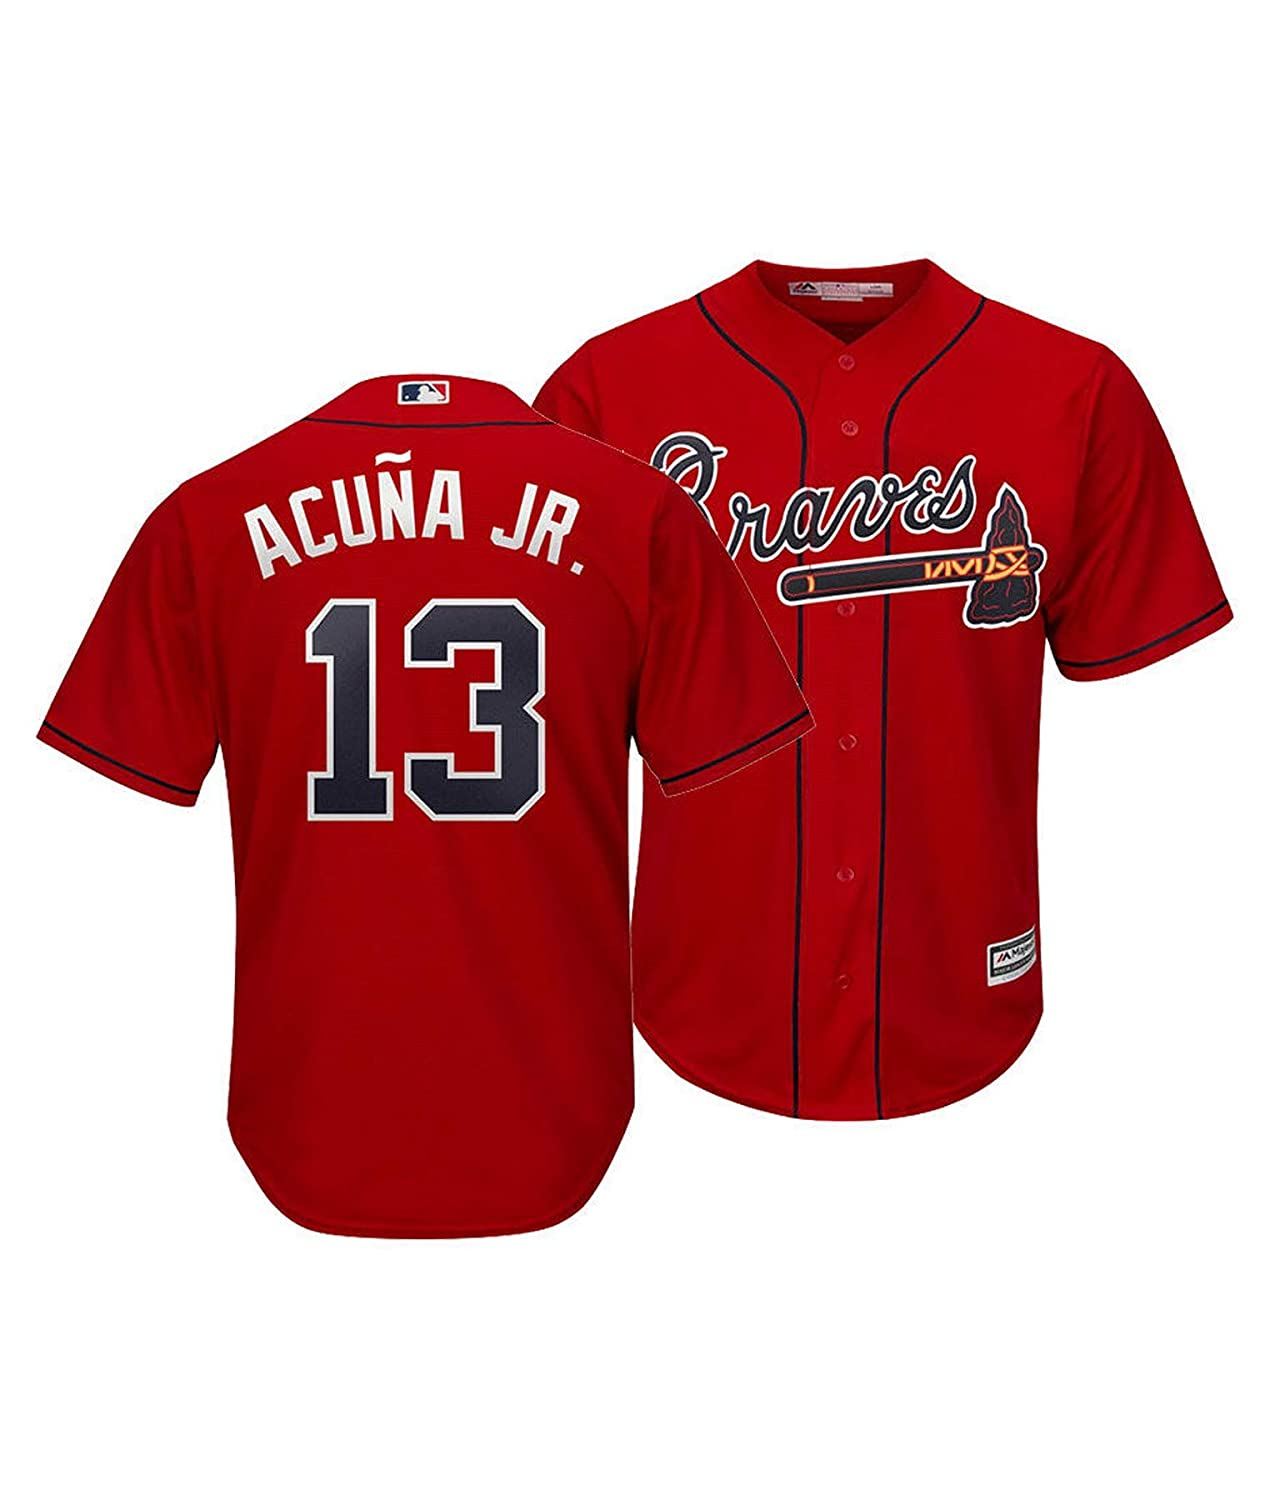 Outerstuff Ronald Acuna Jr Atlanta Braves Kids 4-7 Red Alternate Cool Base Player Jersey